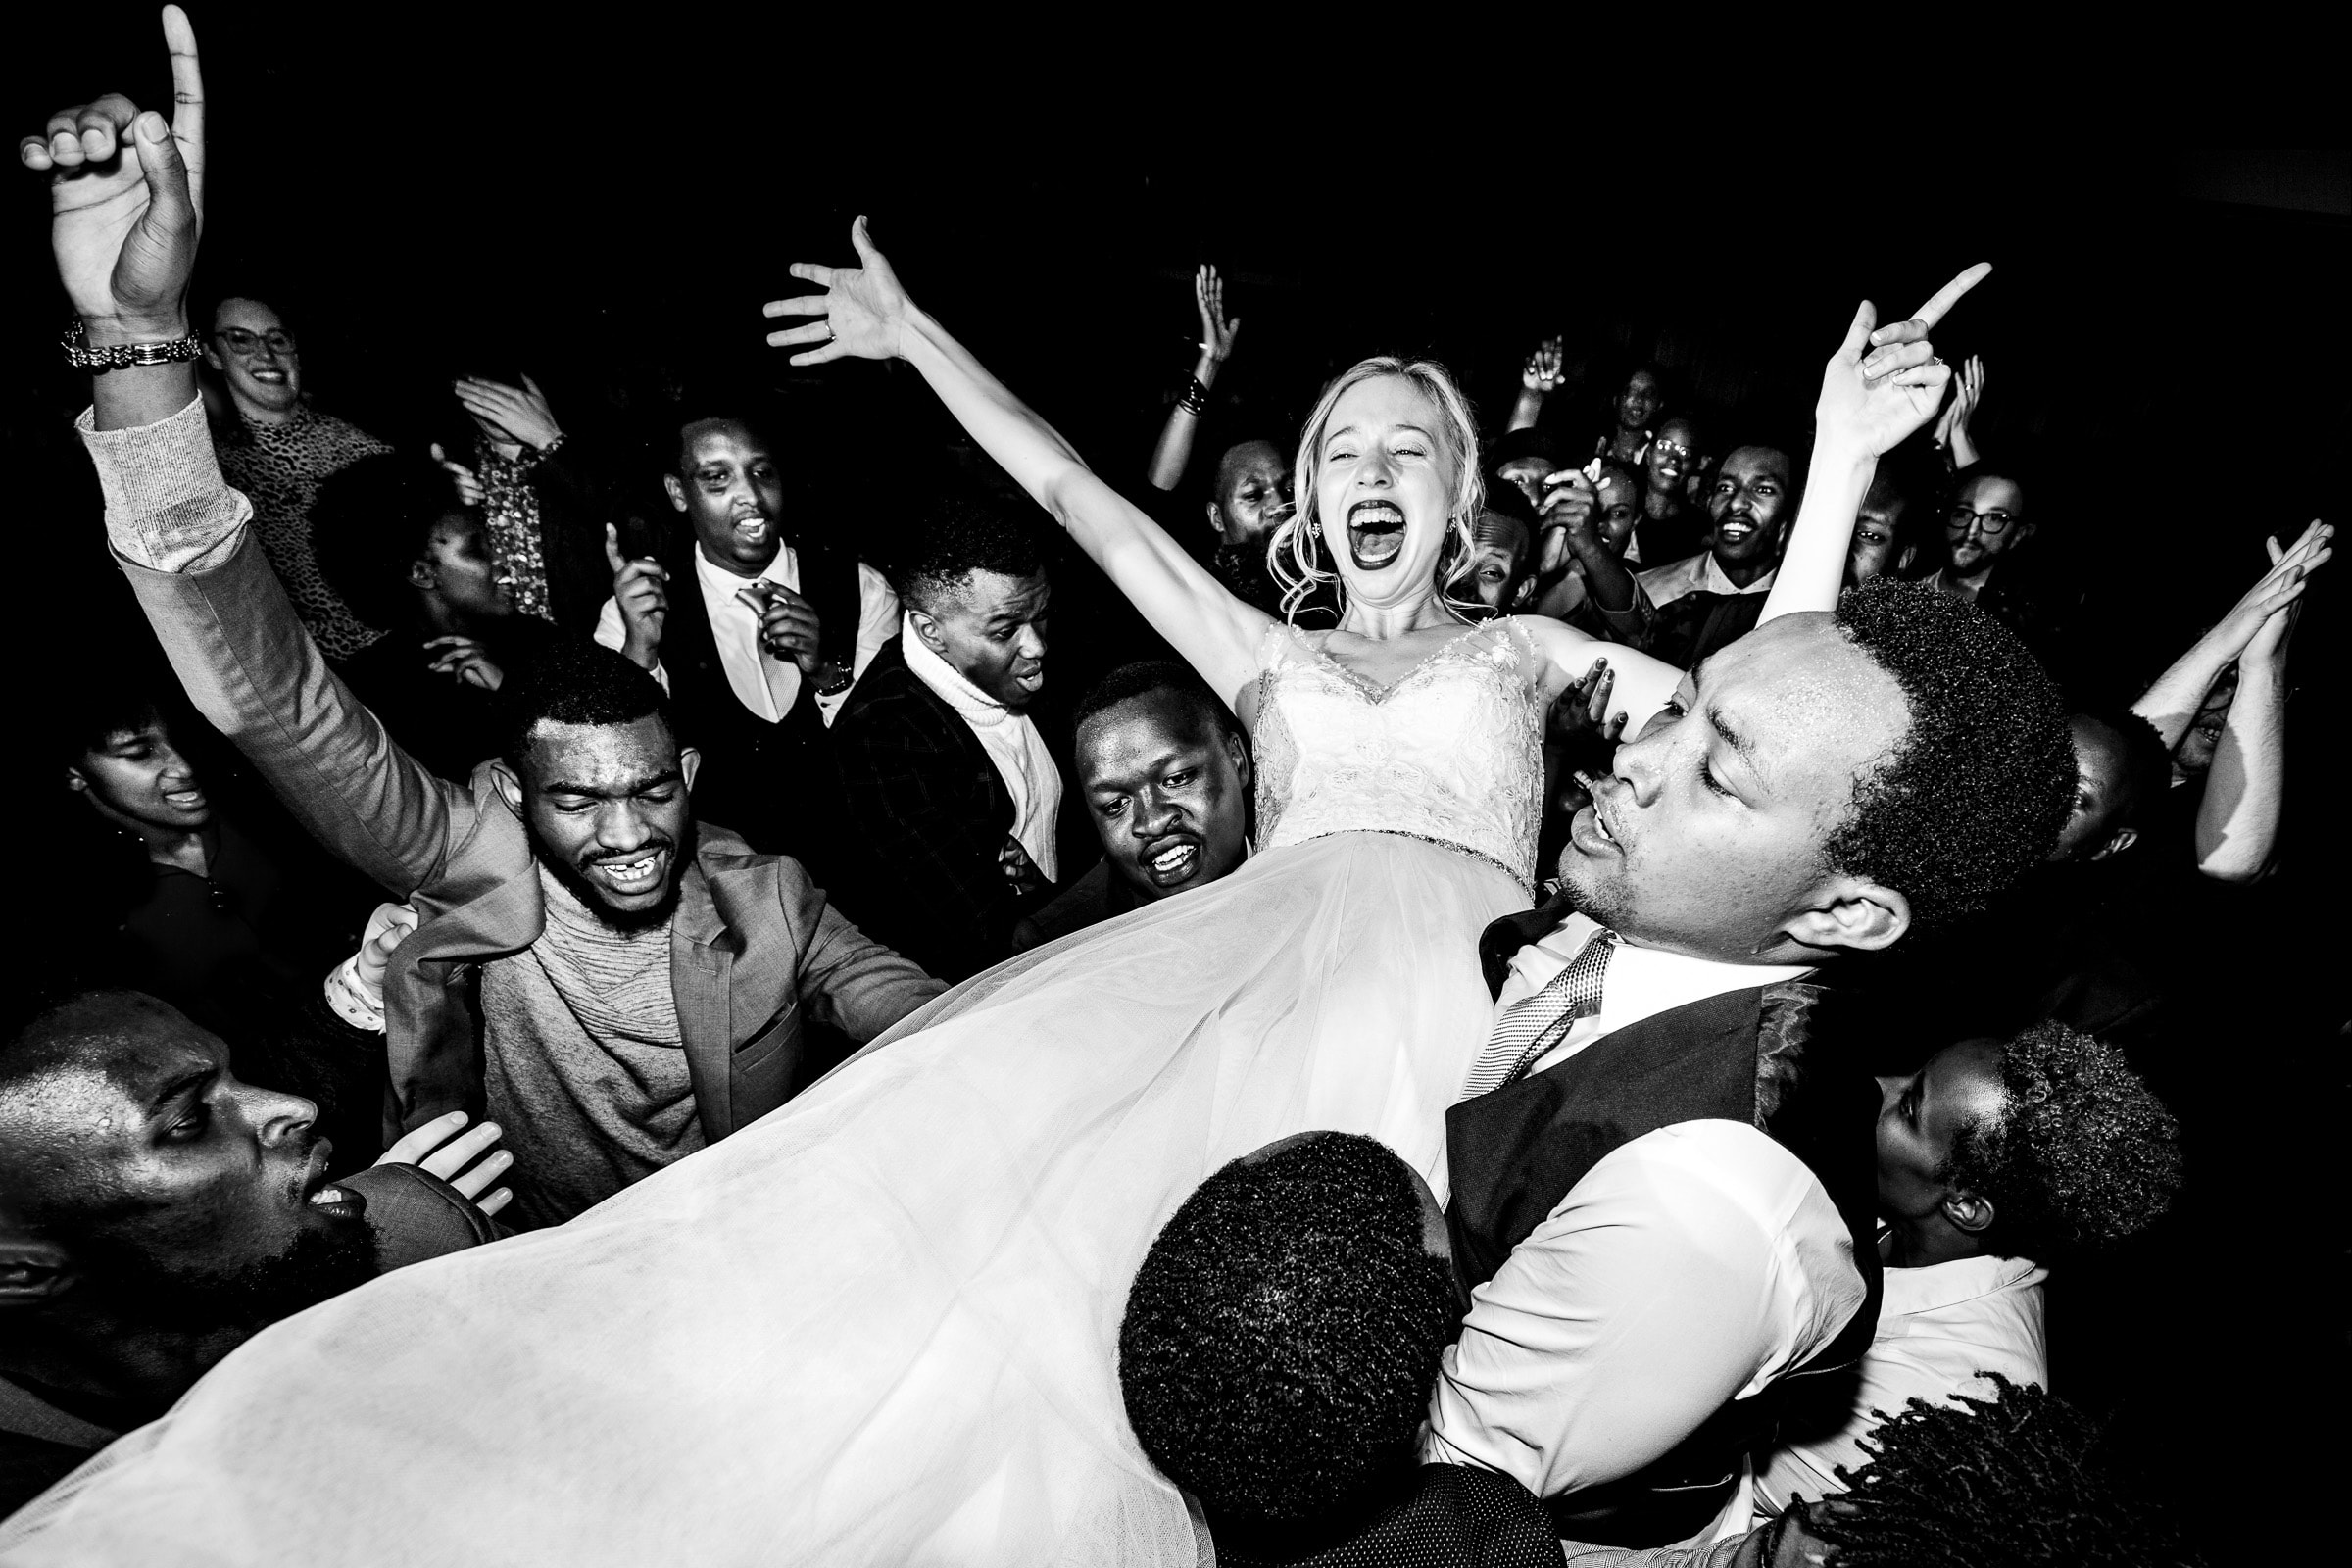 Crazy fun photo of a bride being carried by friends at a Timberline Lodge Wedding reception